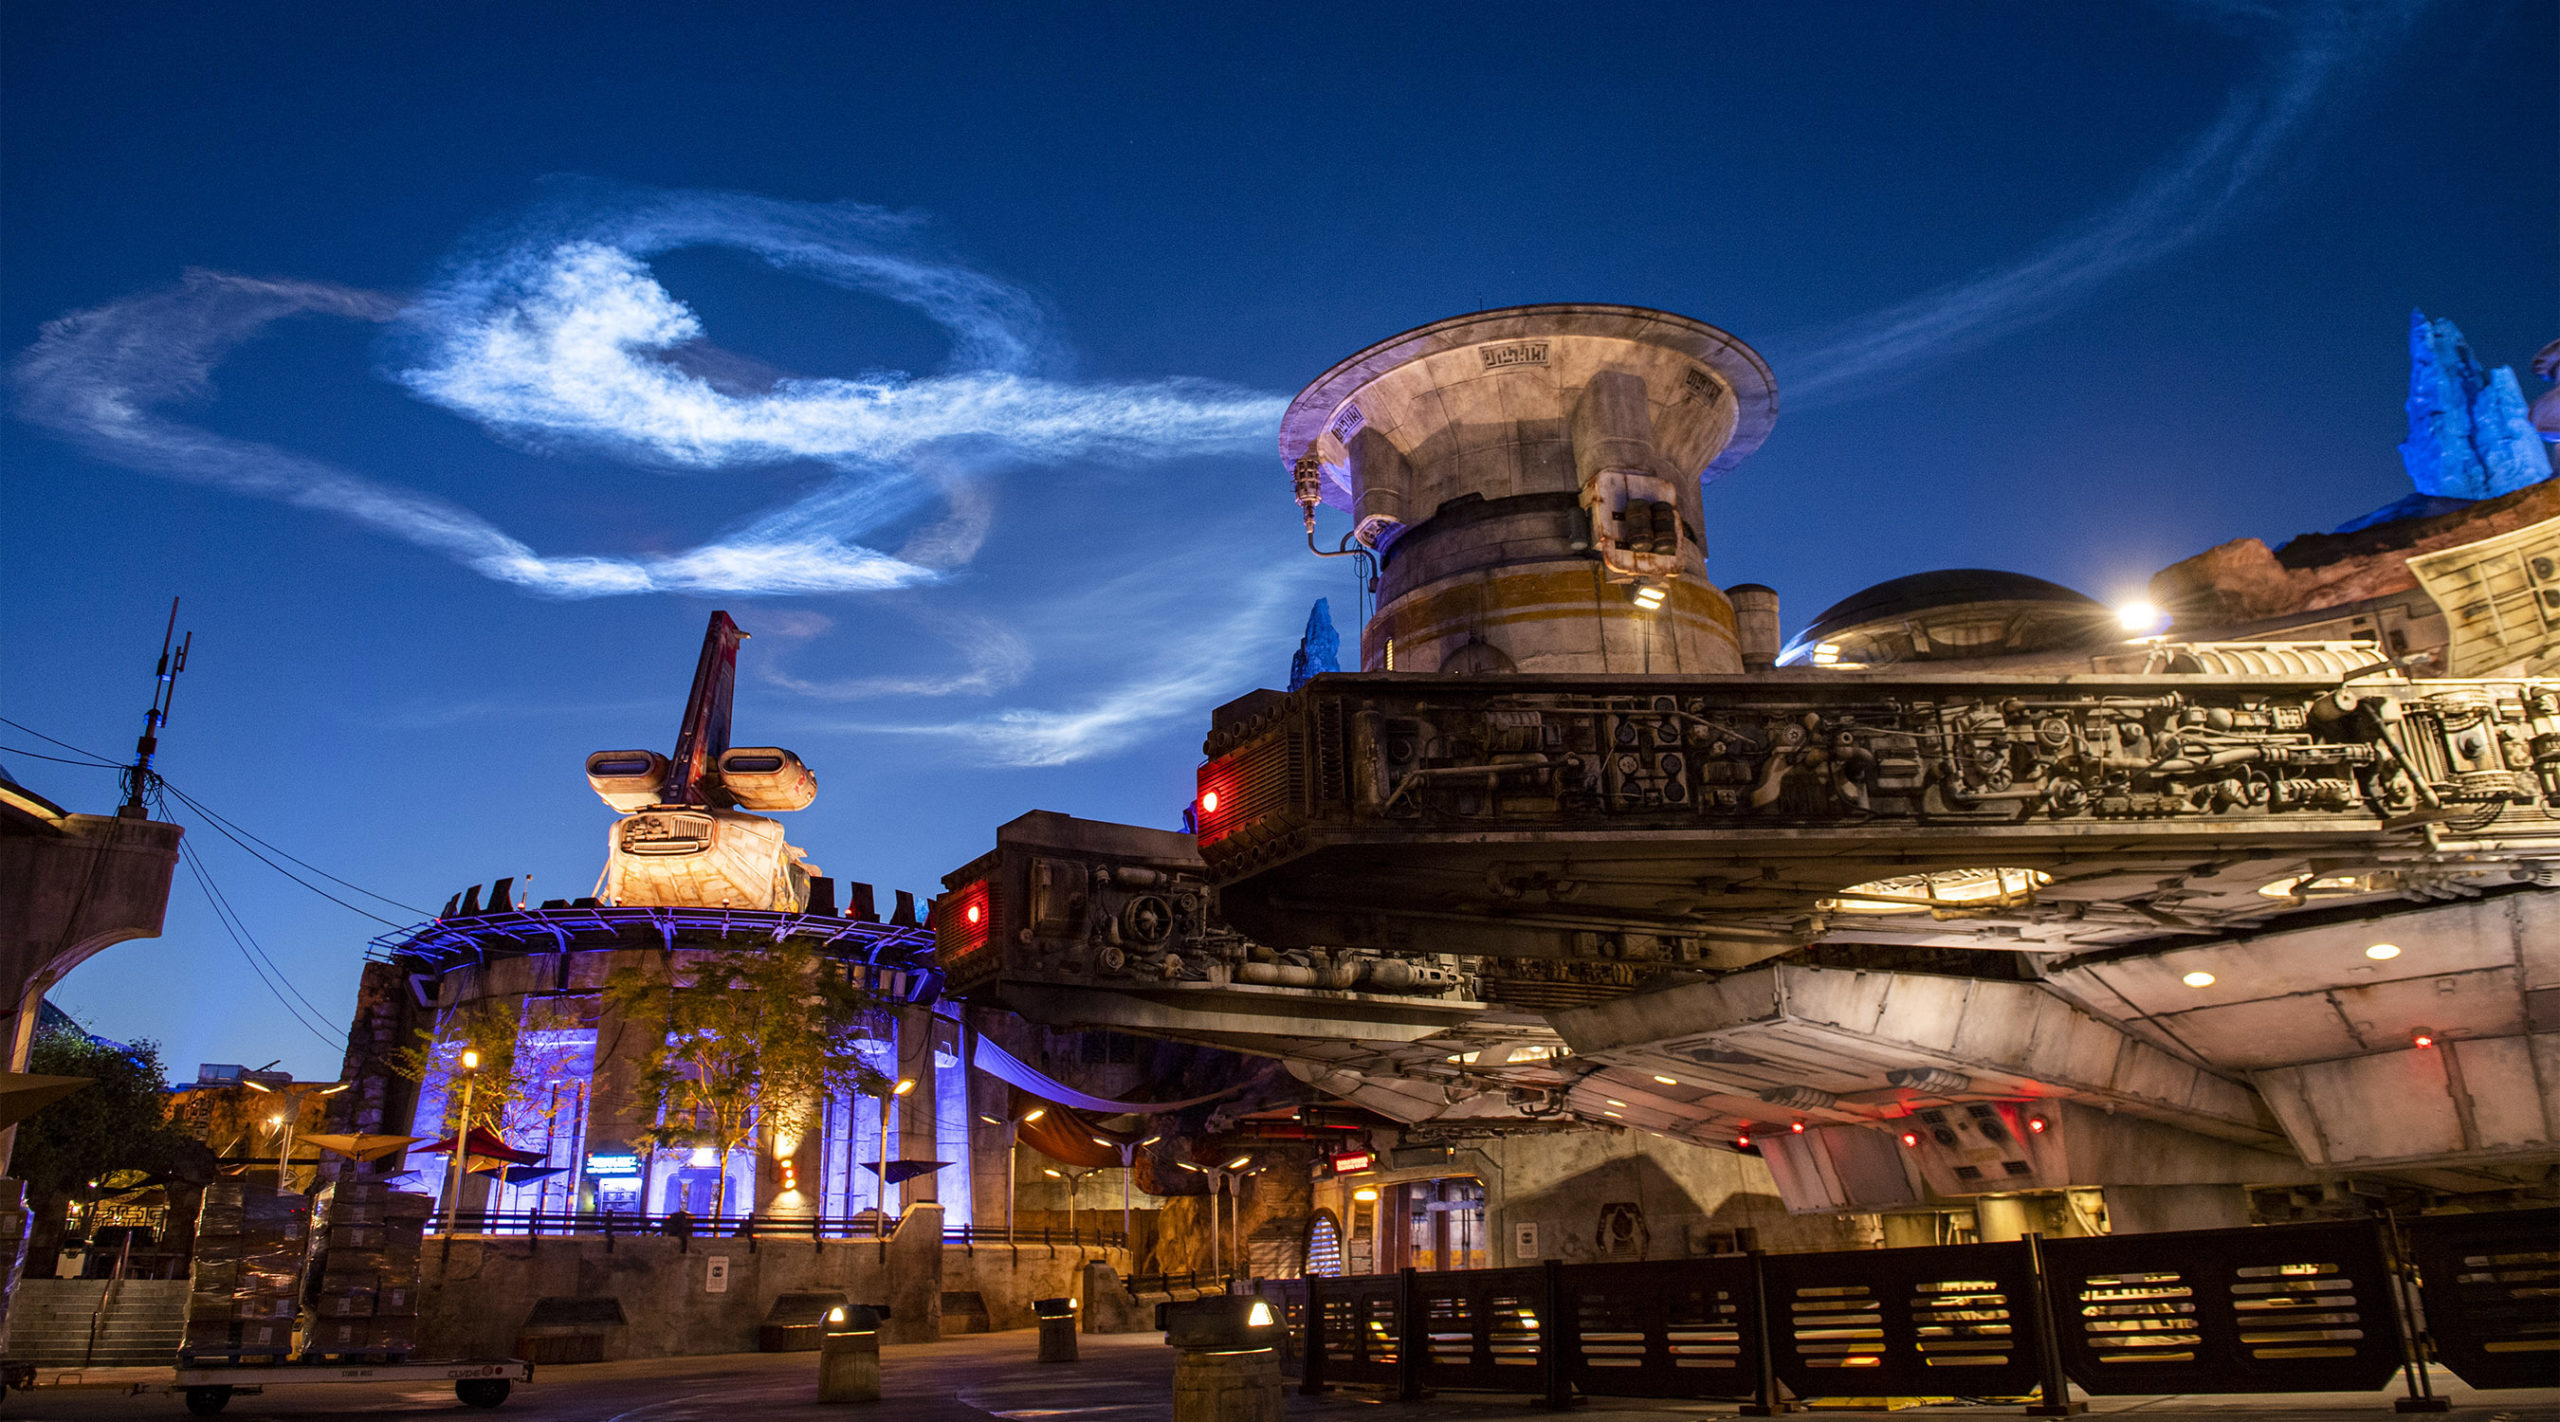 Disney photographers capture SpaceX Falcon 9 rocket launch over Star Wars Galaxy's Edge and Space Mountain at Disney World